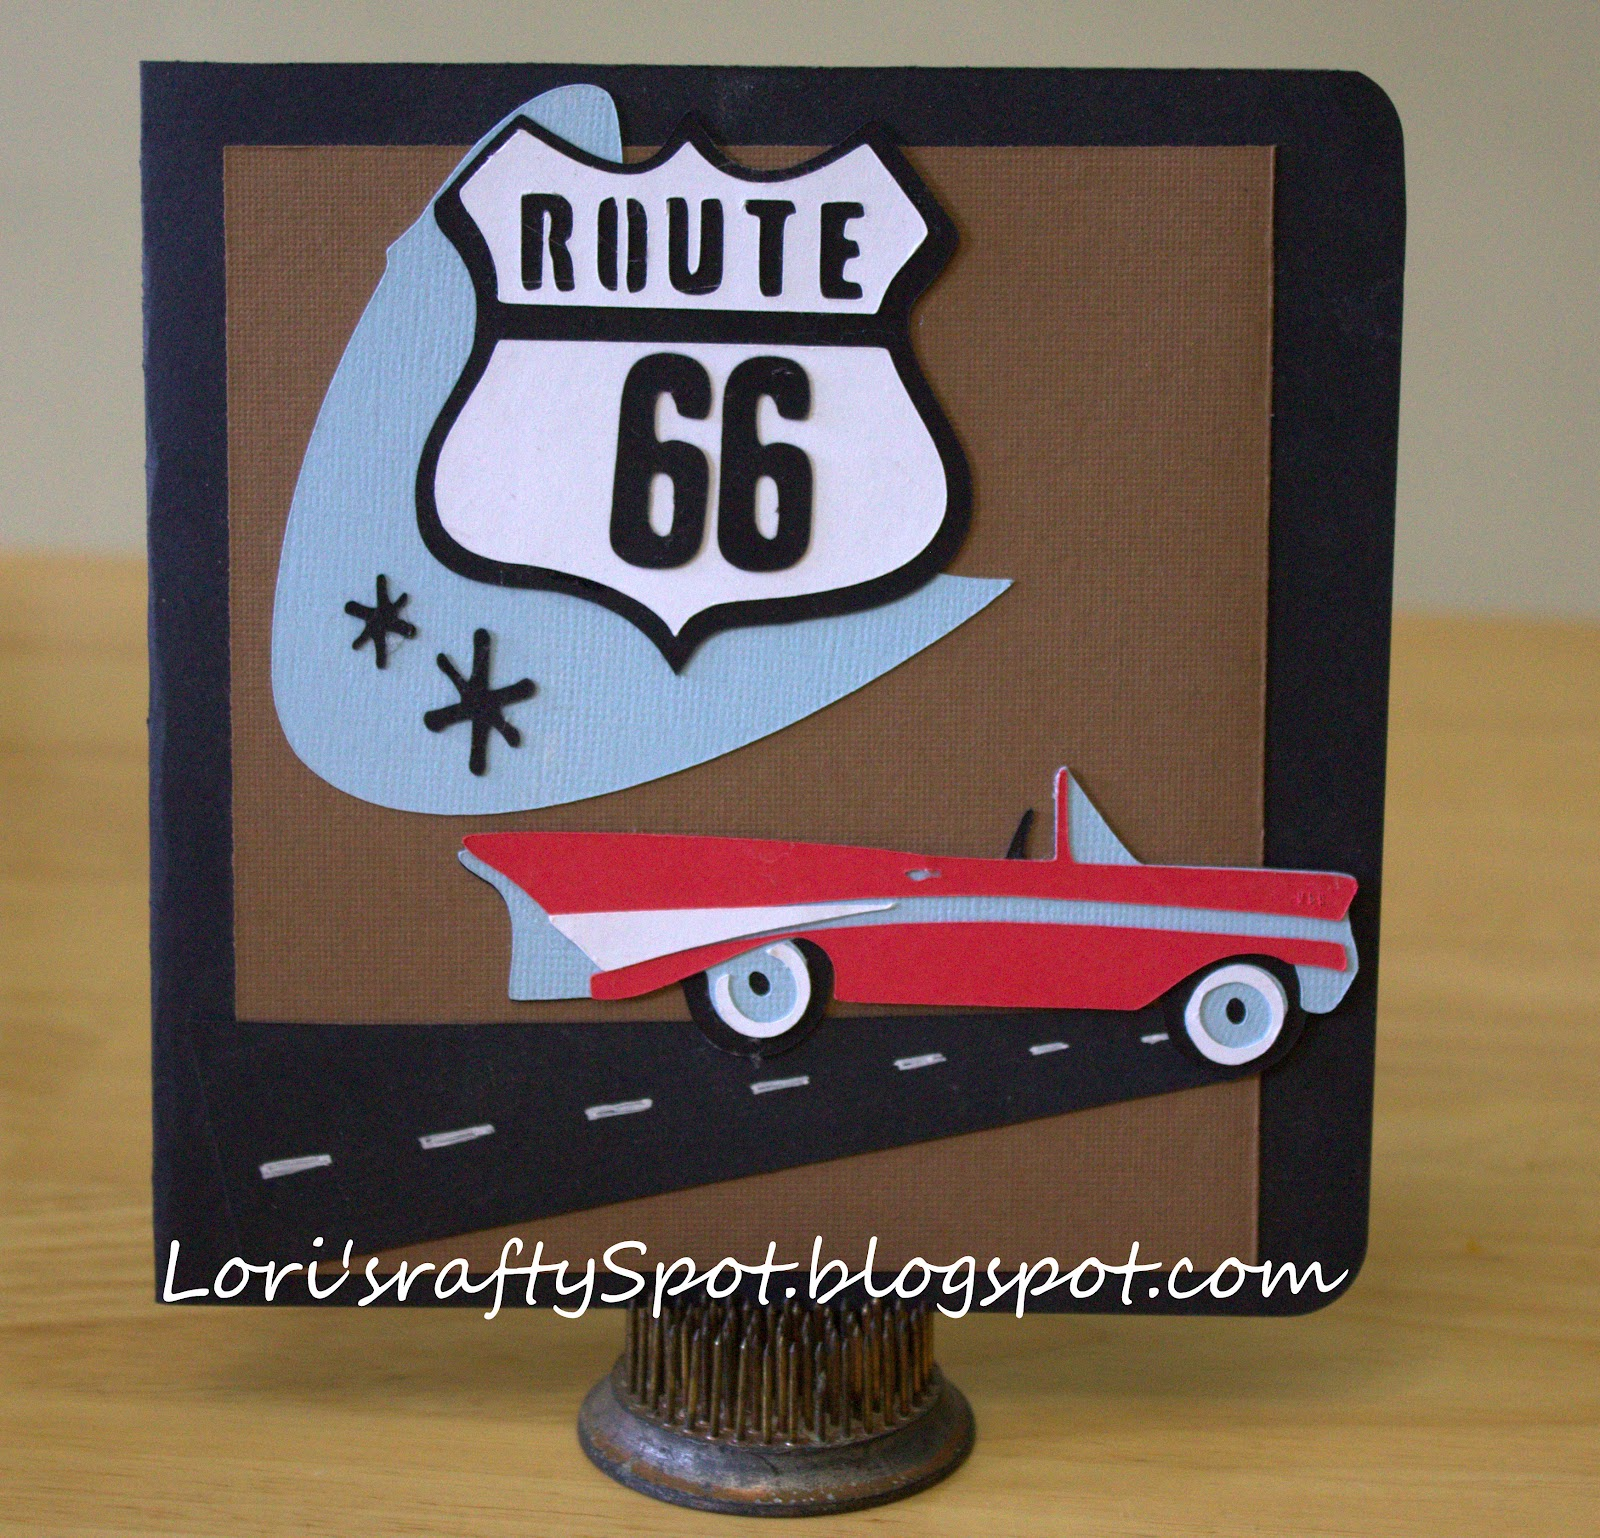 Loris Crafty Spot Route 66 – Manly Birthday Cards